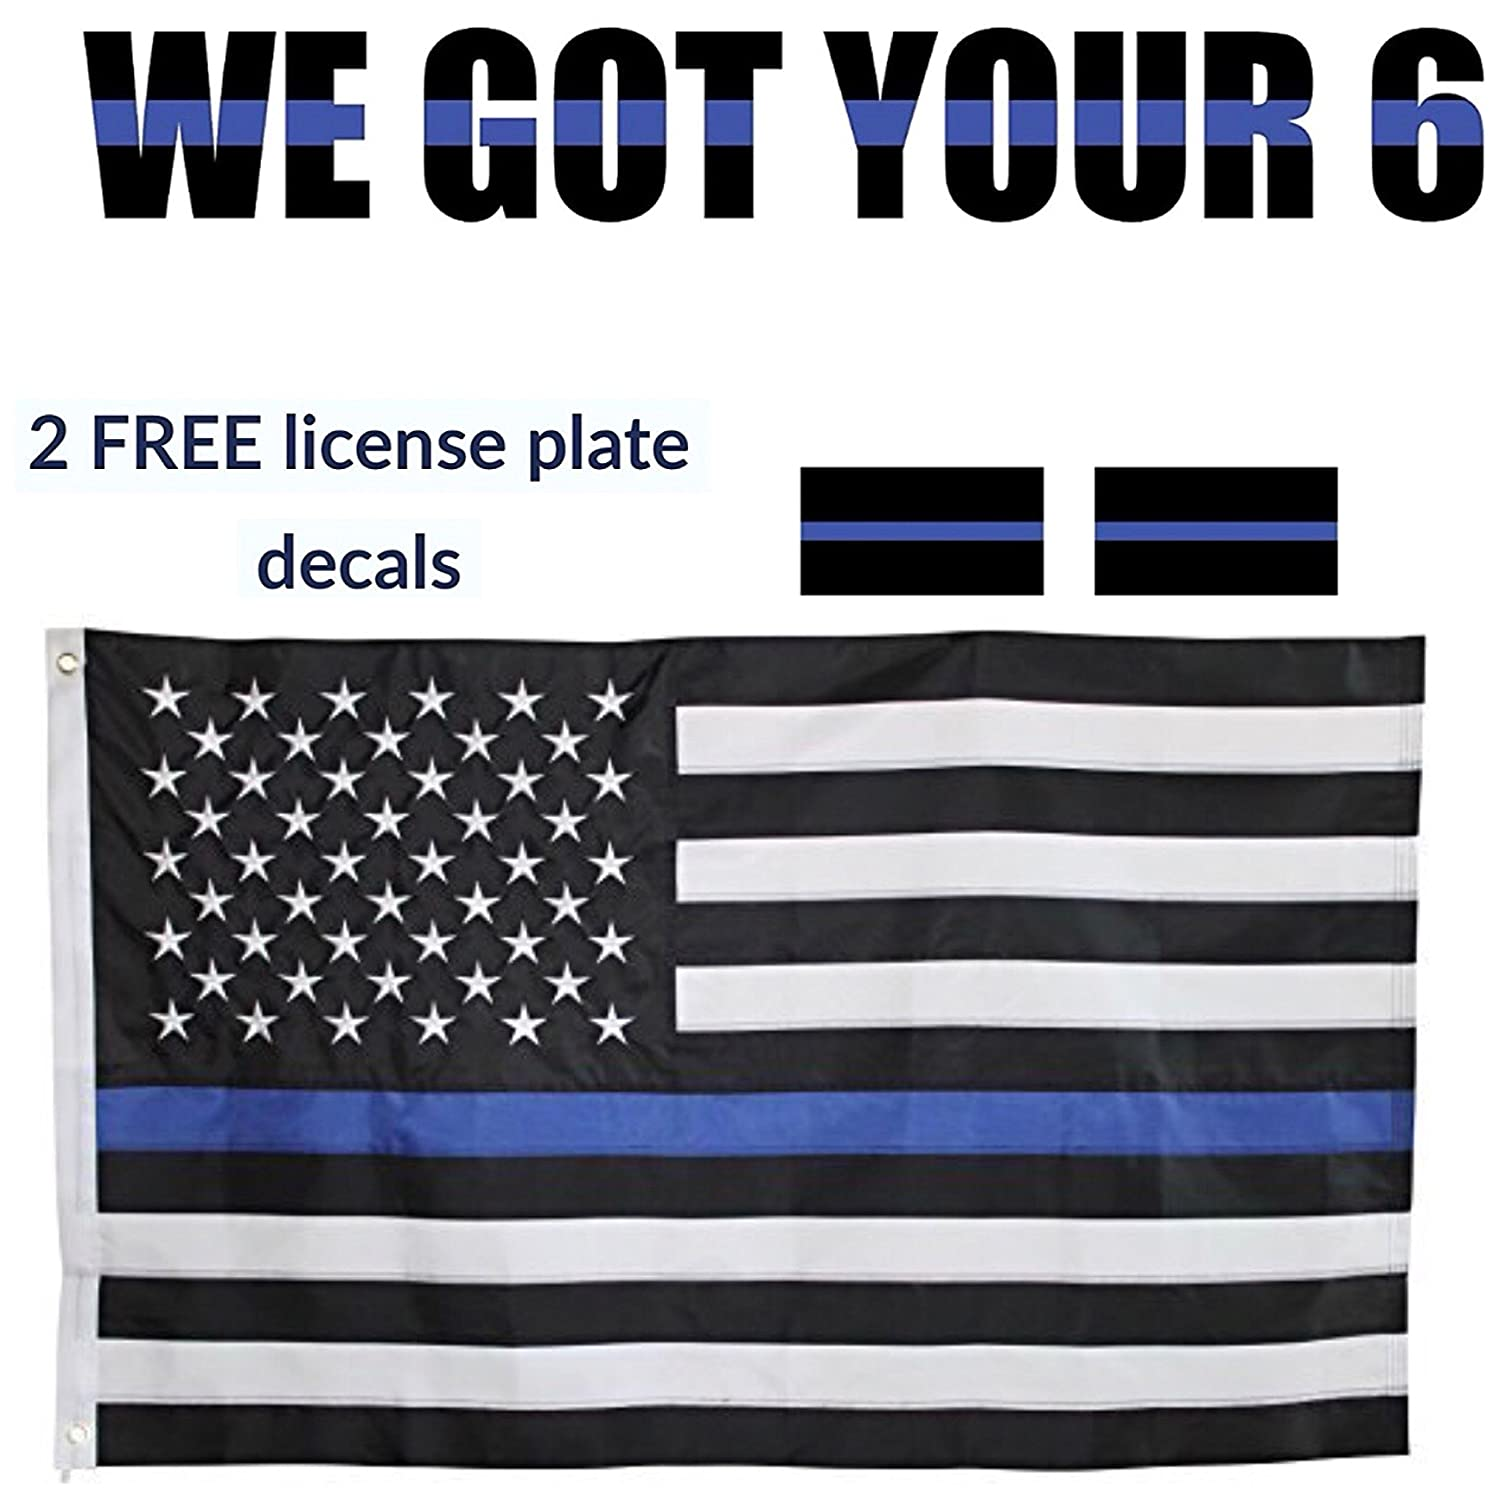 10 Yard Gain BLUE LINE USA FLAG and WE GOT YOUR 6 Vinyl Decal Combo. SUPPORT LAW ENFORCEMENT!